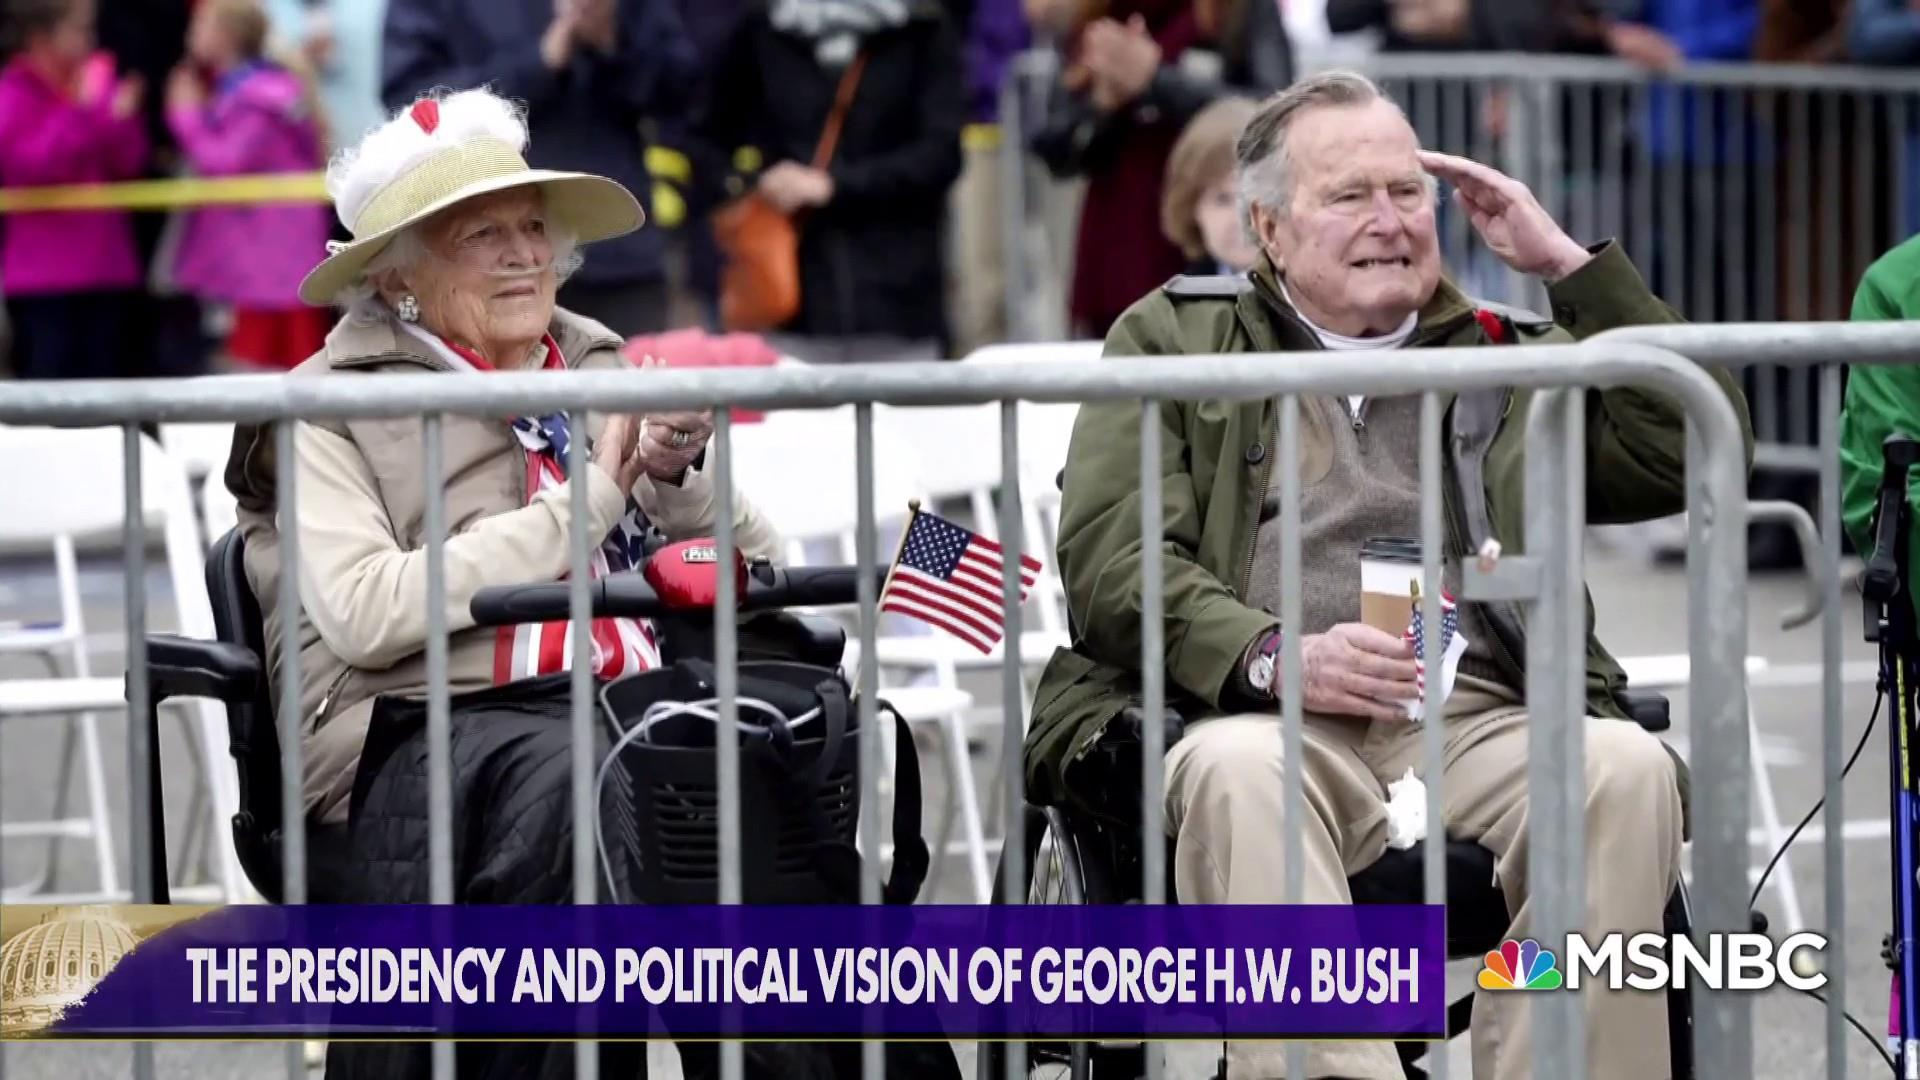 The kinder, gentler America: George H.W. Bush's vision for the country